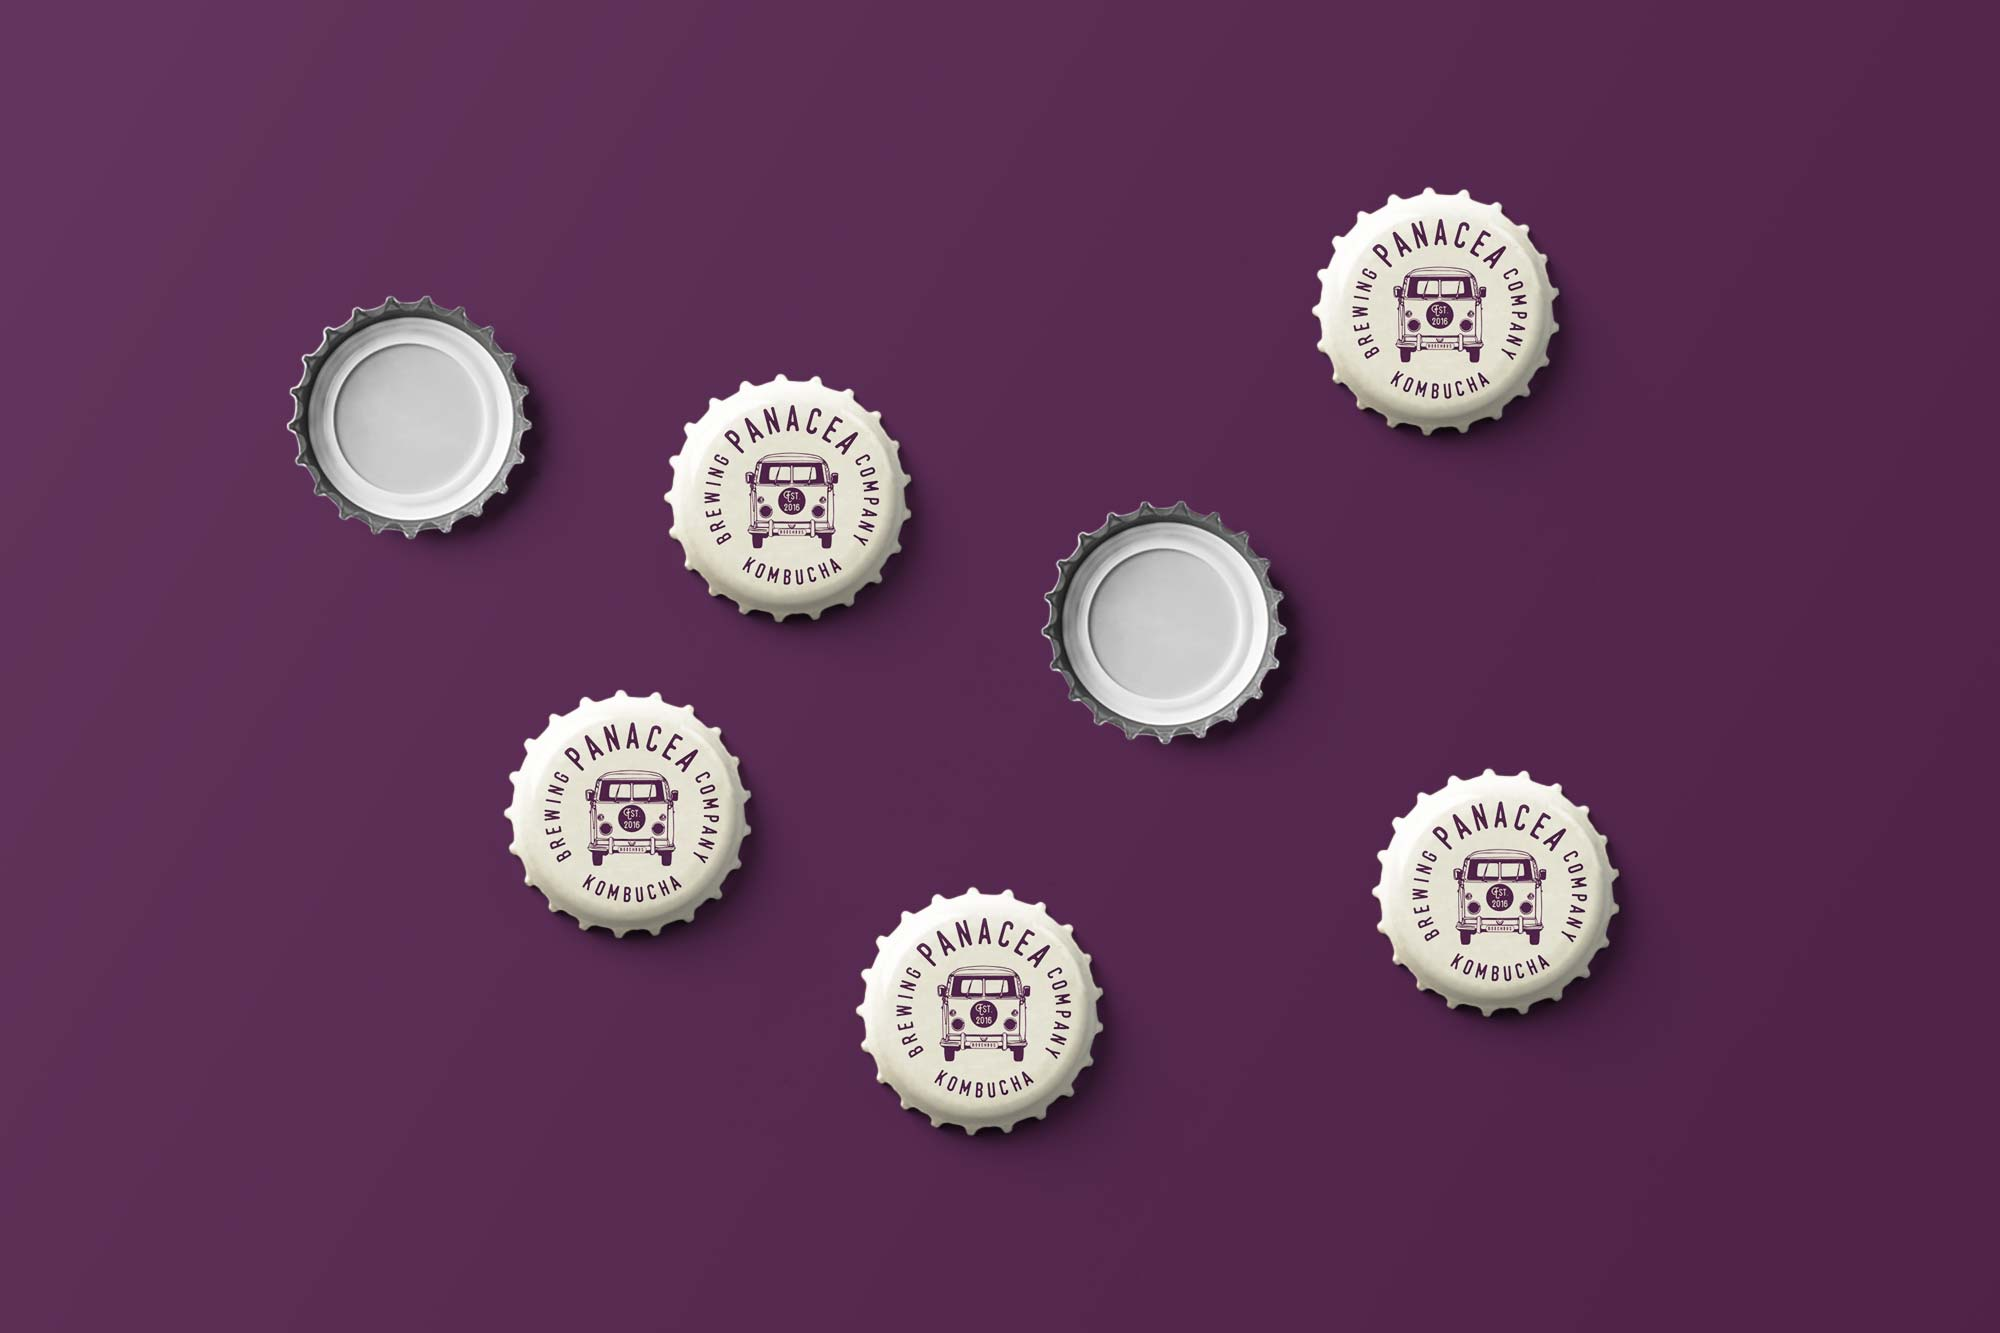 Kombucha bottle cap design